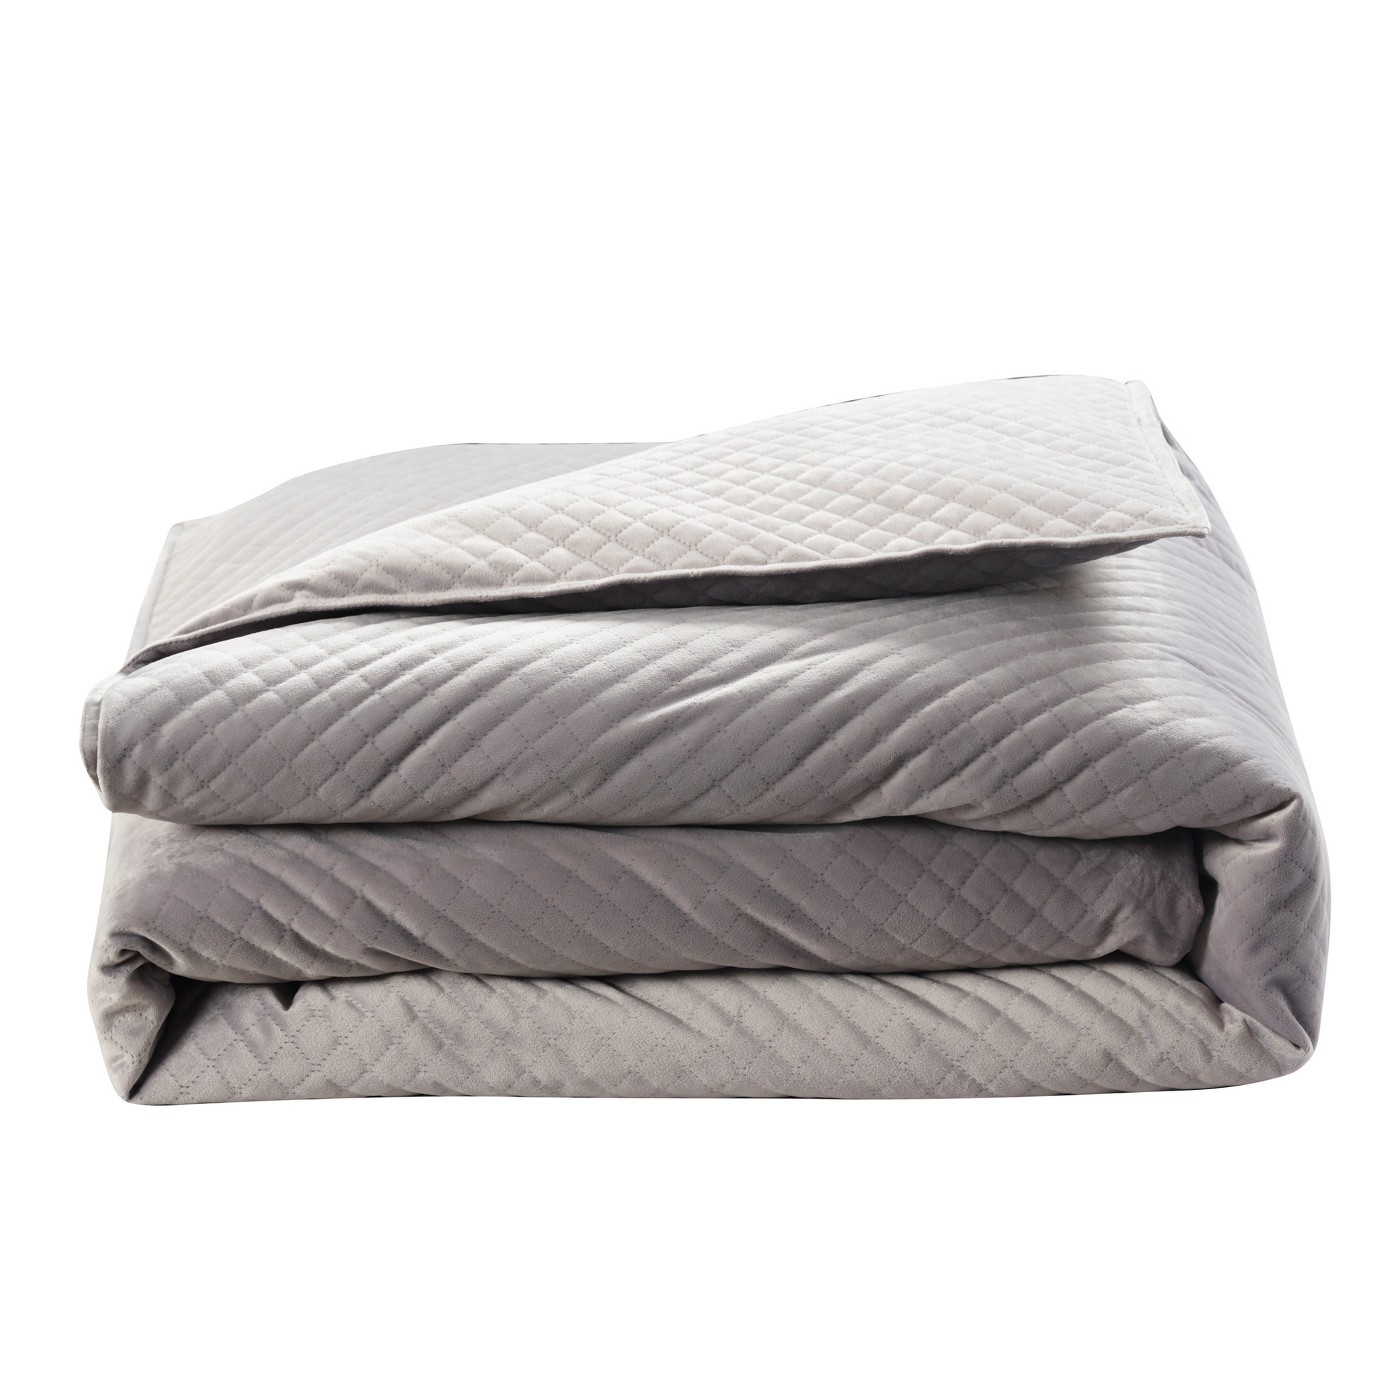 """48""""x 74"""" 15lb Quilted Weighted Blanket - BlanQuil"""